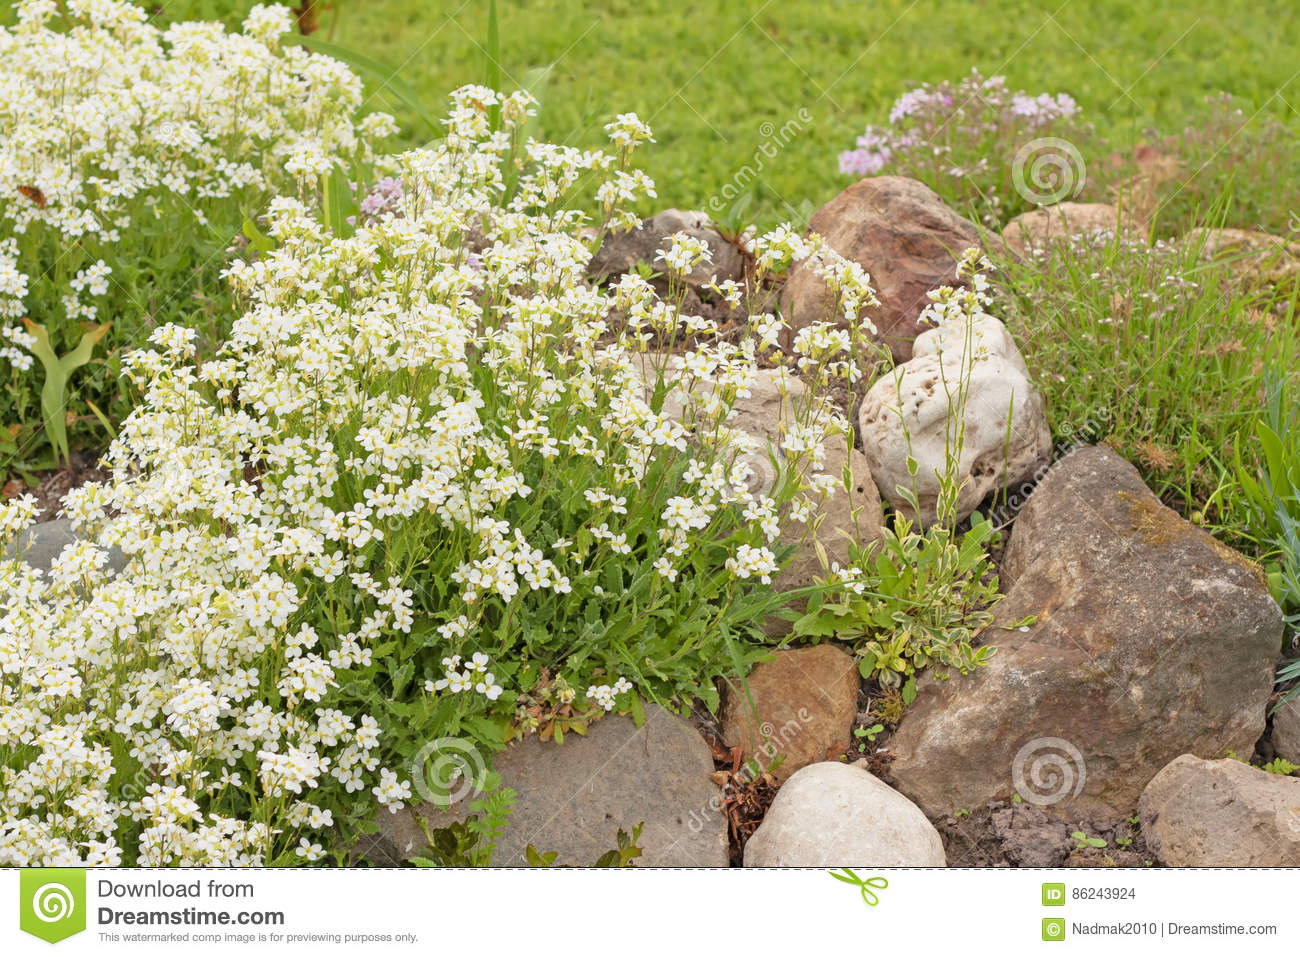 White Flowers Arabis Or Rockcress On A Rocky Hill In The Garden